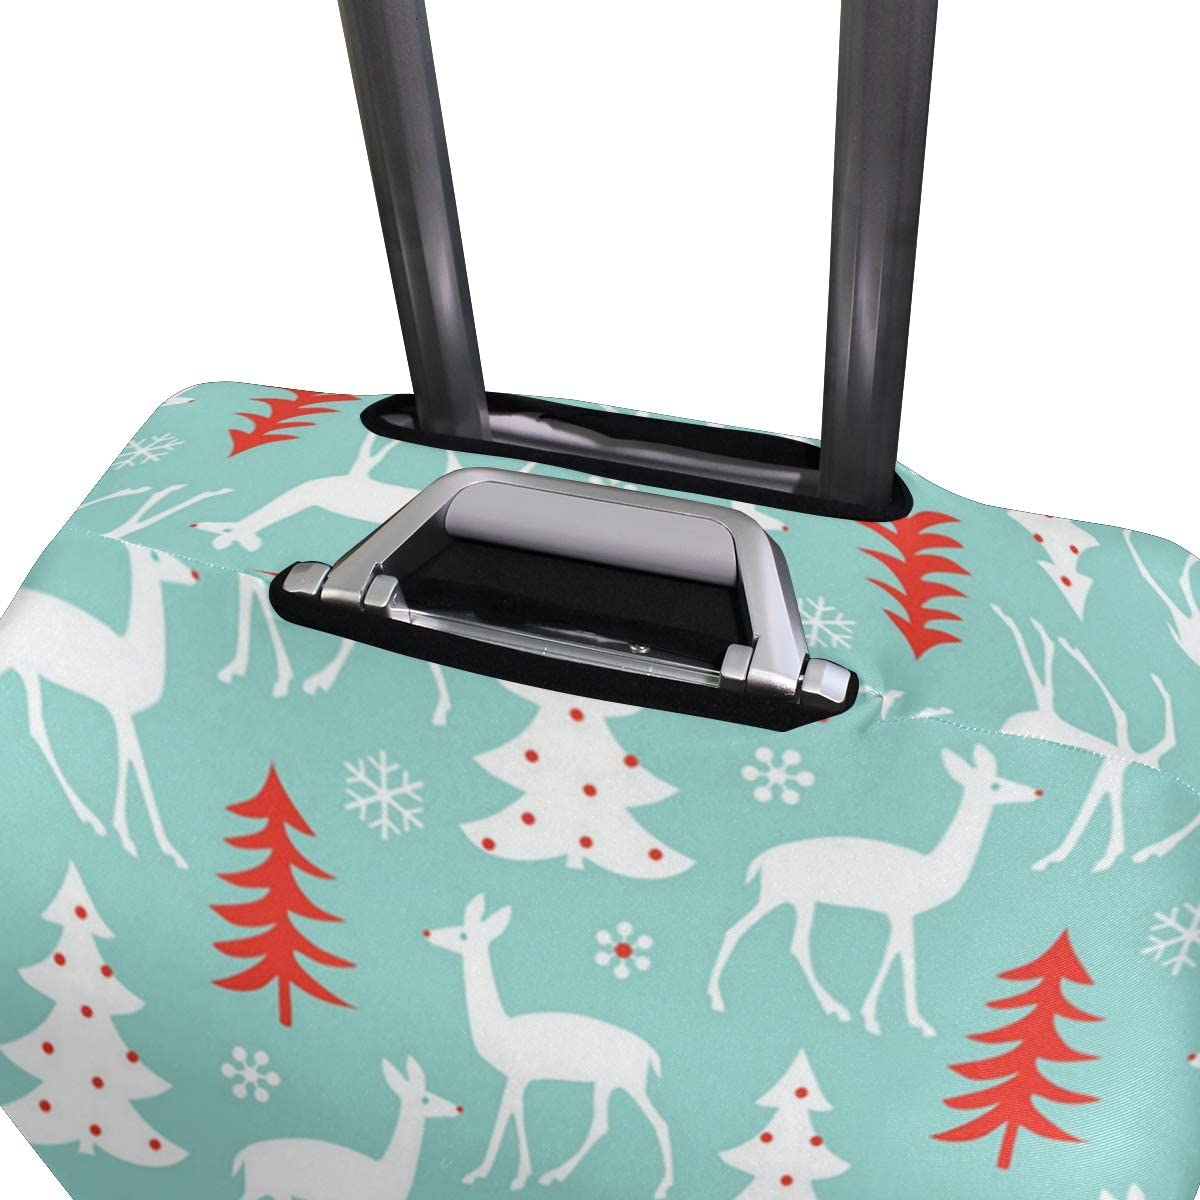 Reindeer Blue Snow Travel Luggage Protector Case Suitcase Protector For Man/&Woman Fits 18-32 Inch Luggage